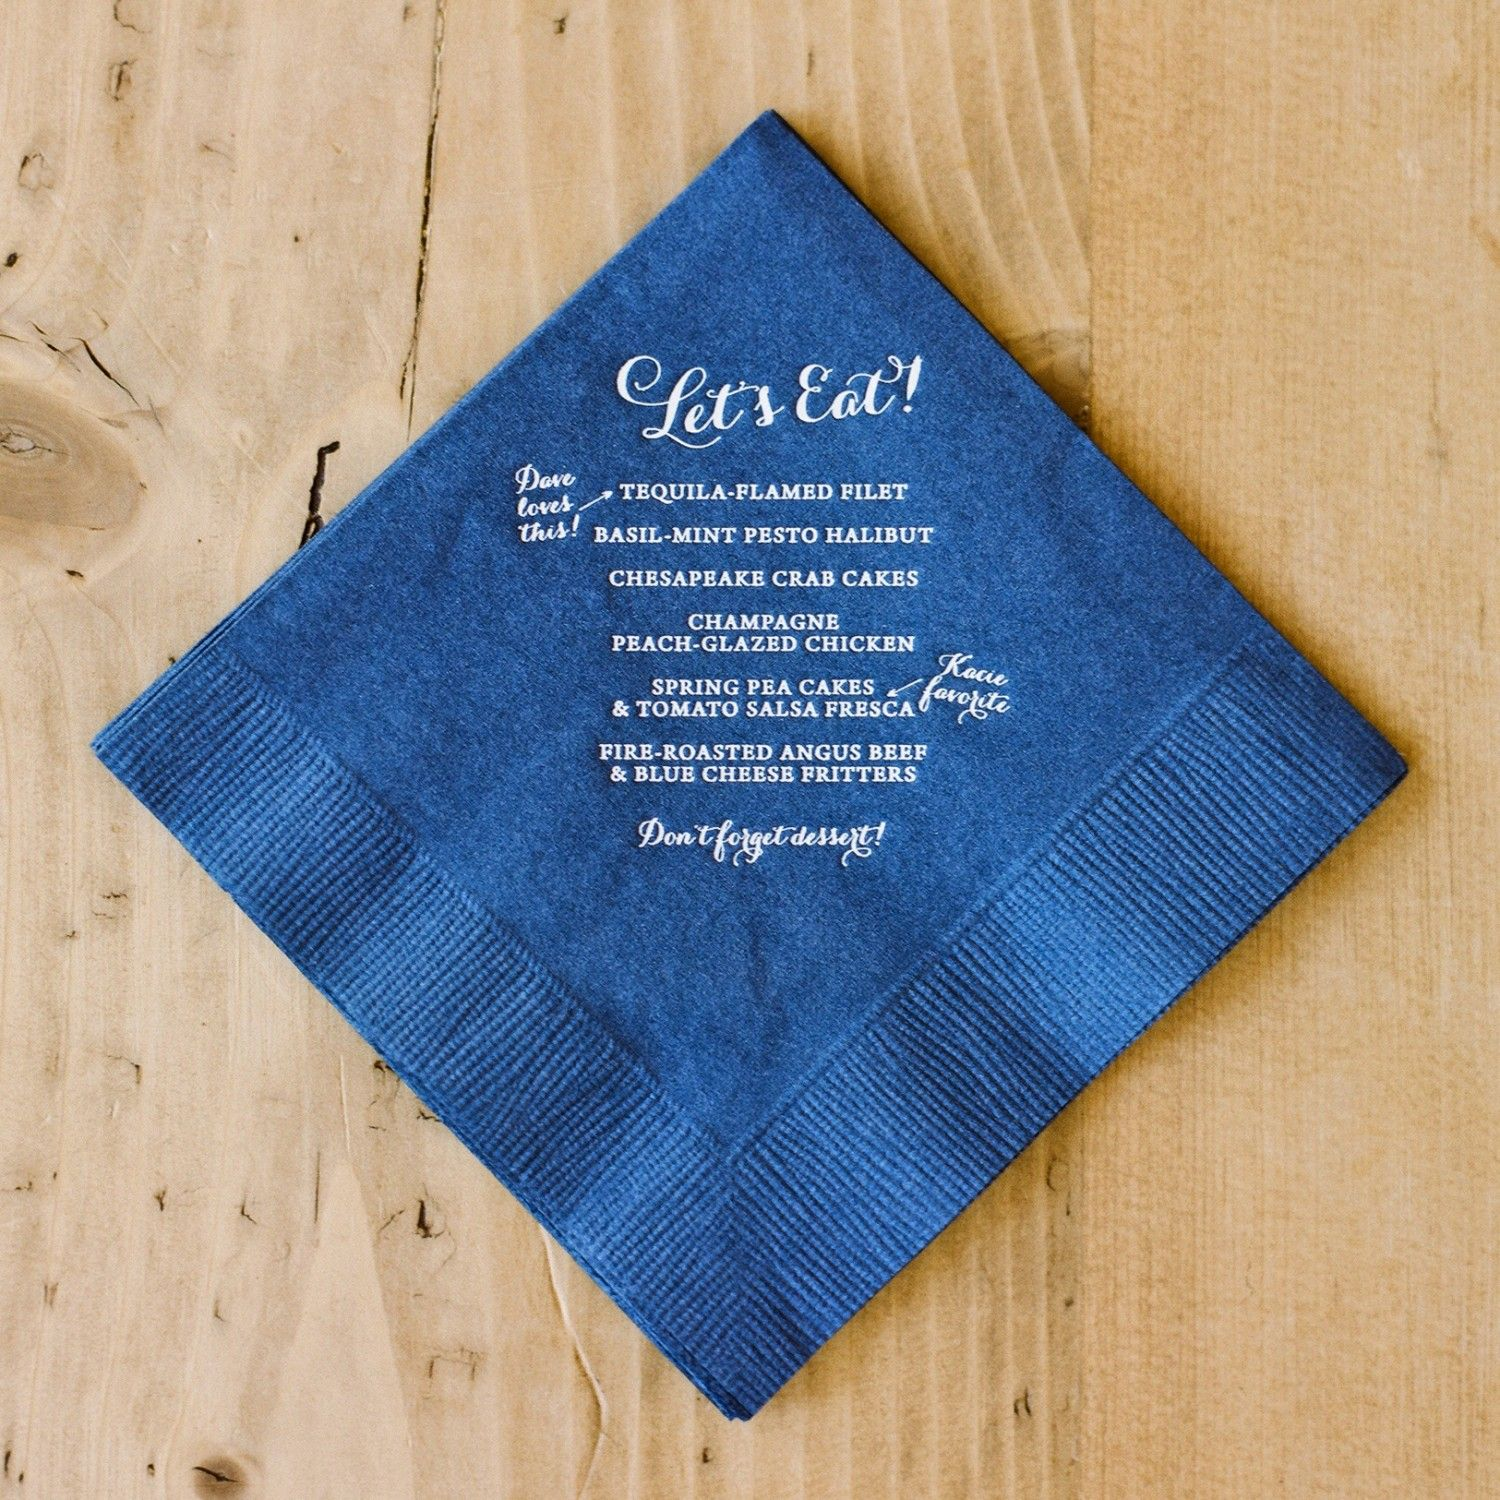 DIY with a custom stamp ($20 approx) and do ALL your cocktail napkins.